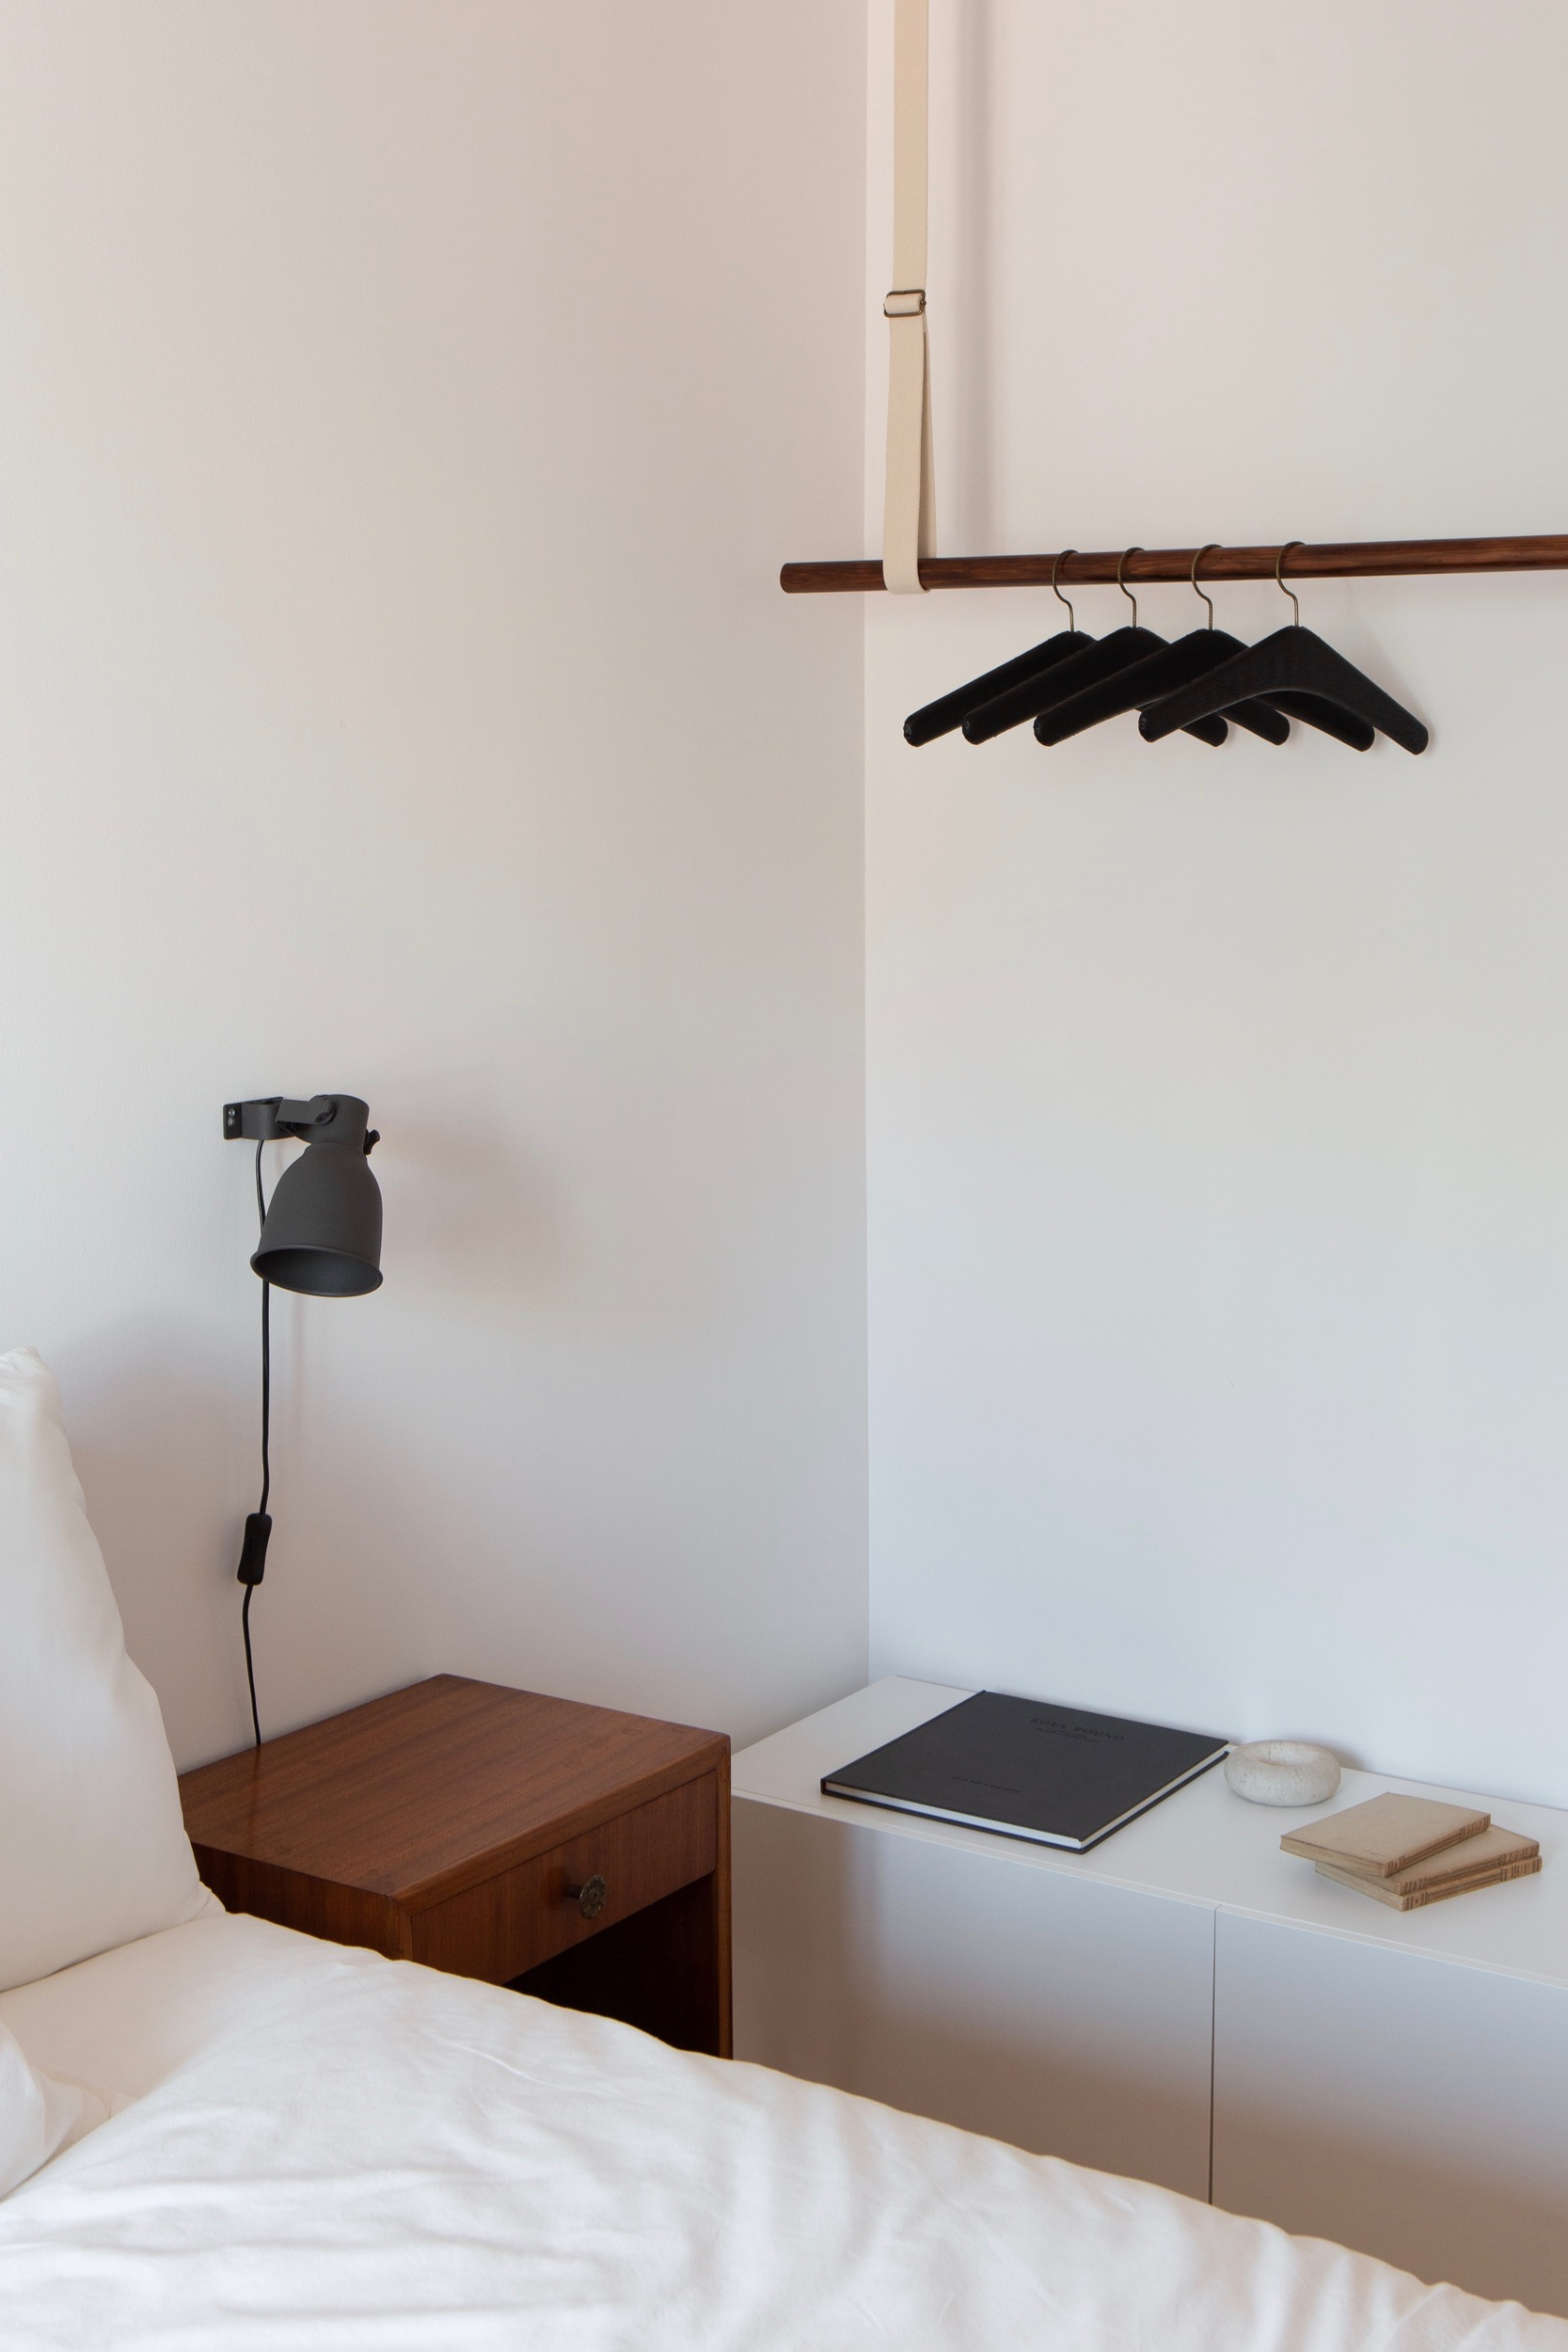 Detail photo of Lola Cwikowski Studio Travessa da Pereira Apartment residential project showing bedroom with vintage nightstands and custom clothes hanging system with vintage black leather hangers.